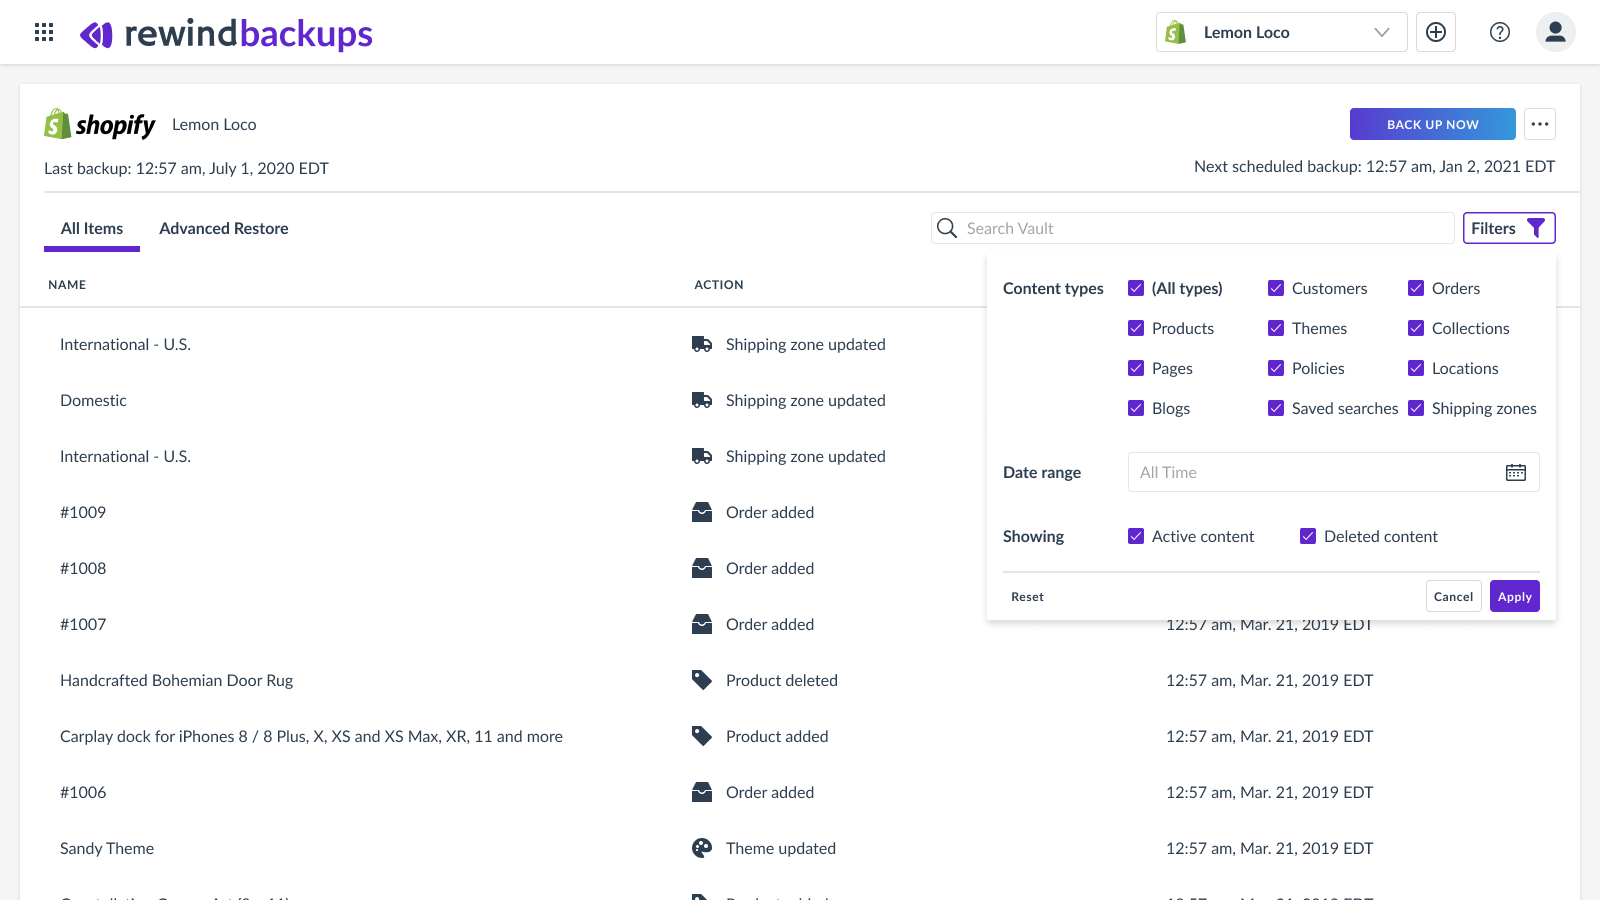 Shopify Backups - Rewind Vault Filters Orders Products